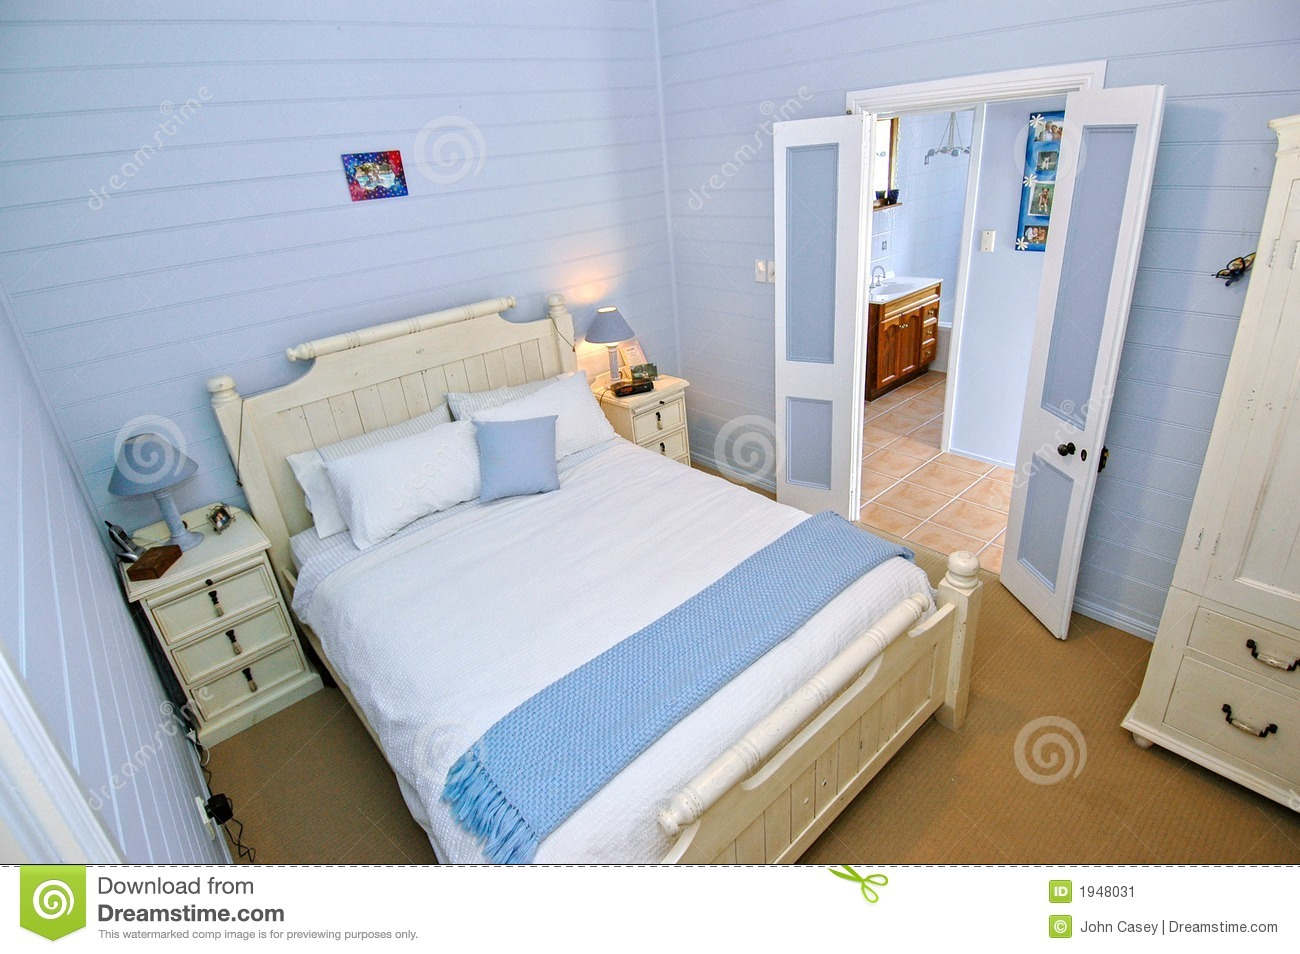 blue bedroom walls bedroom with light blue walls stock image image 1948031 10881